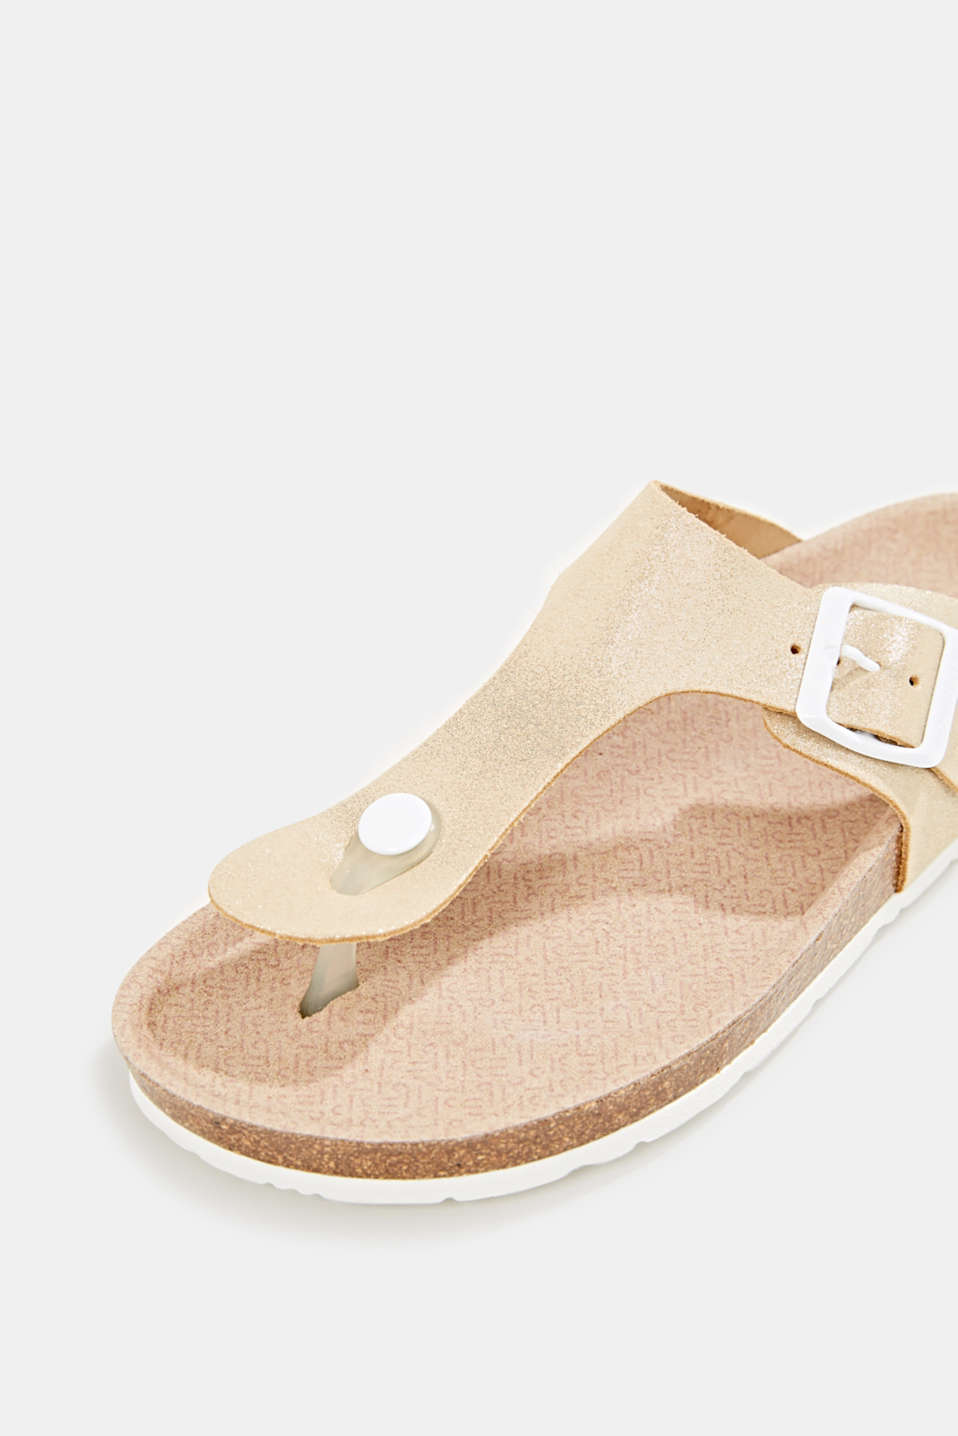 Leather slip-ons with a footbed, SAND, detail image number 4